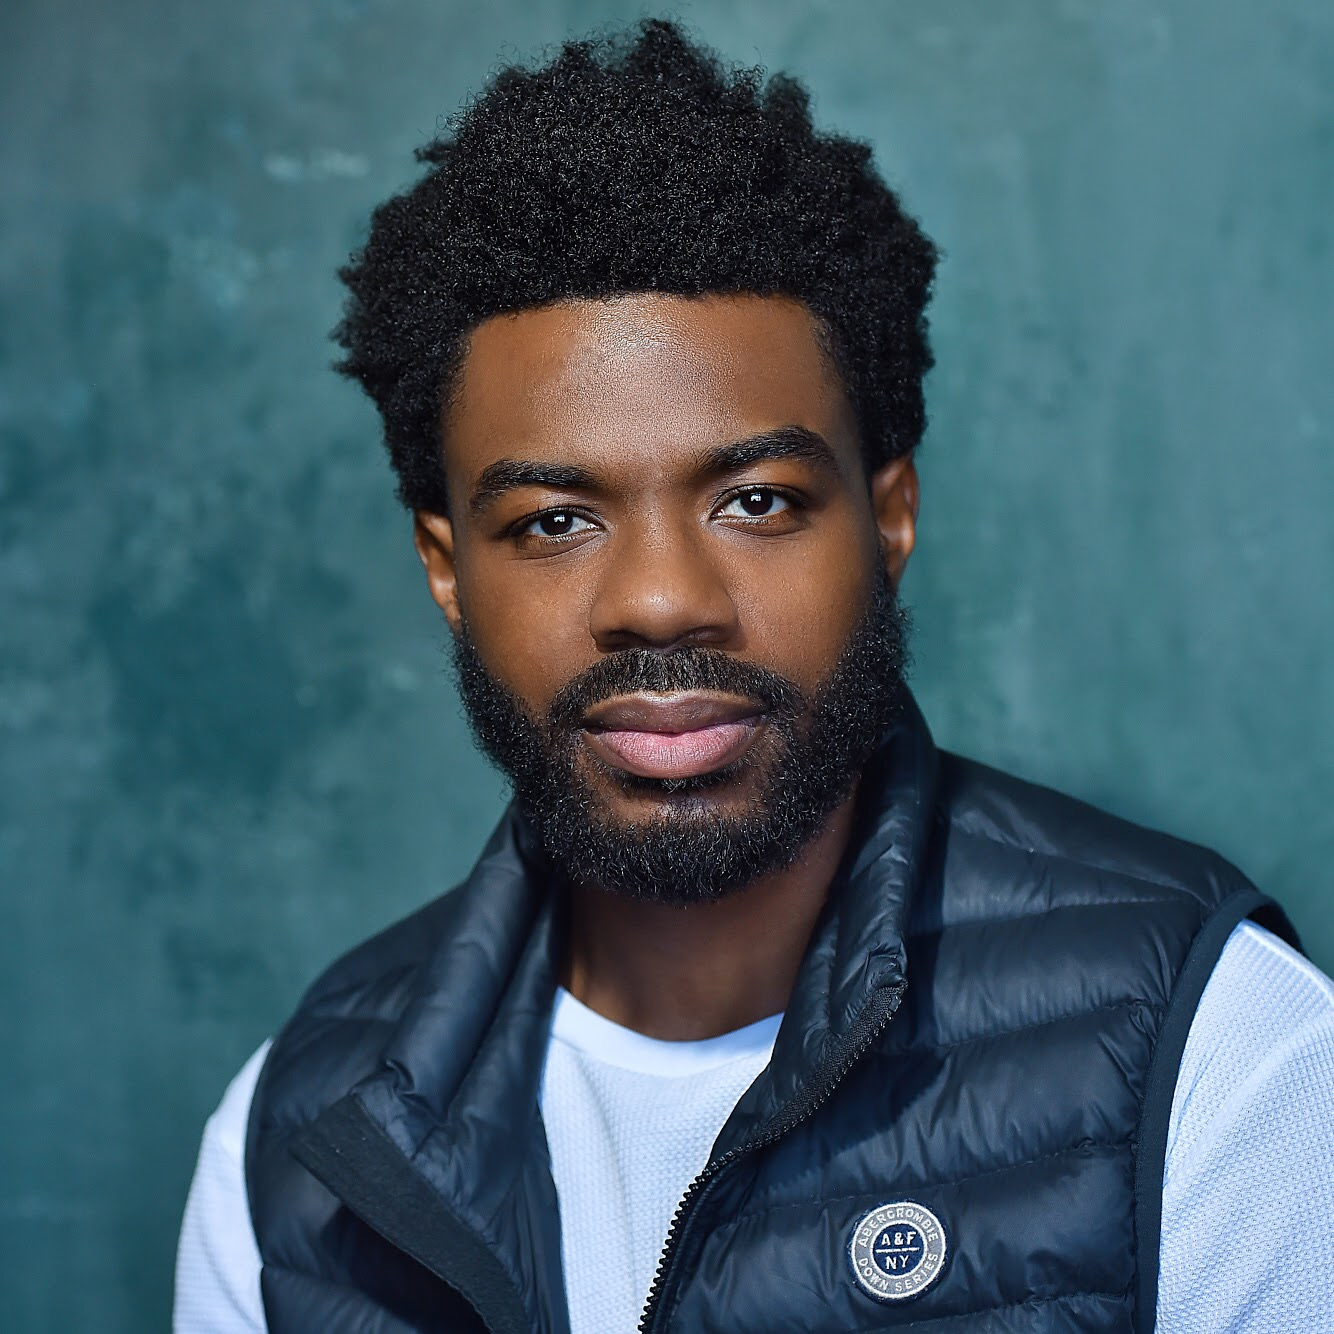 Kendall J Johnson is an actor, writer, and director. He earned his MF'A from the University of Southern California and currently runs Coin and Ghost theater company in Los Angeles.  -